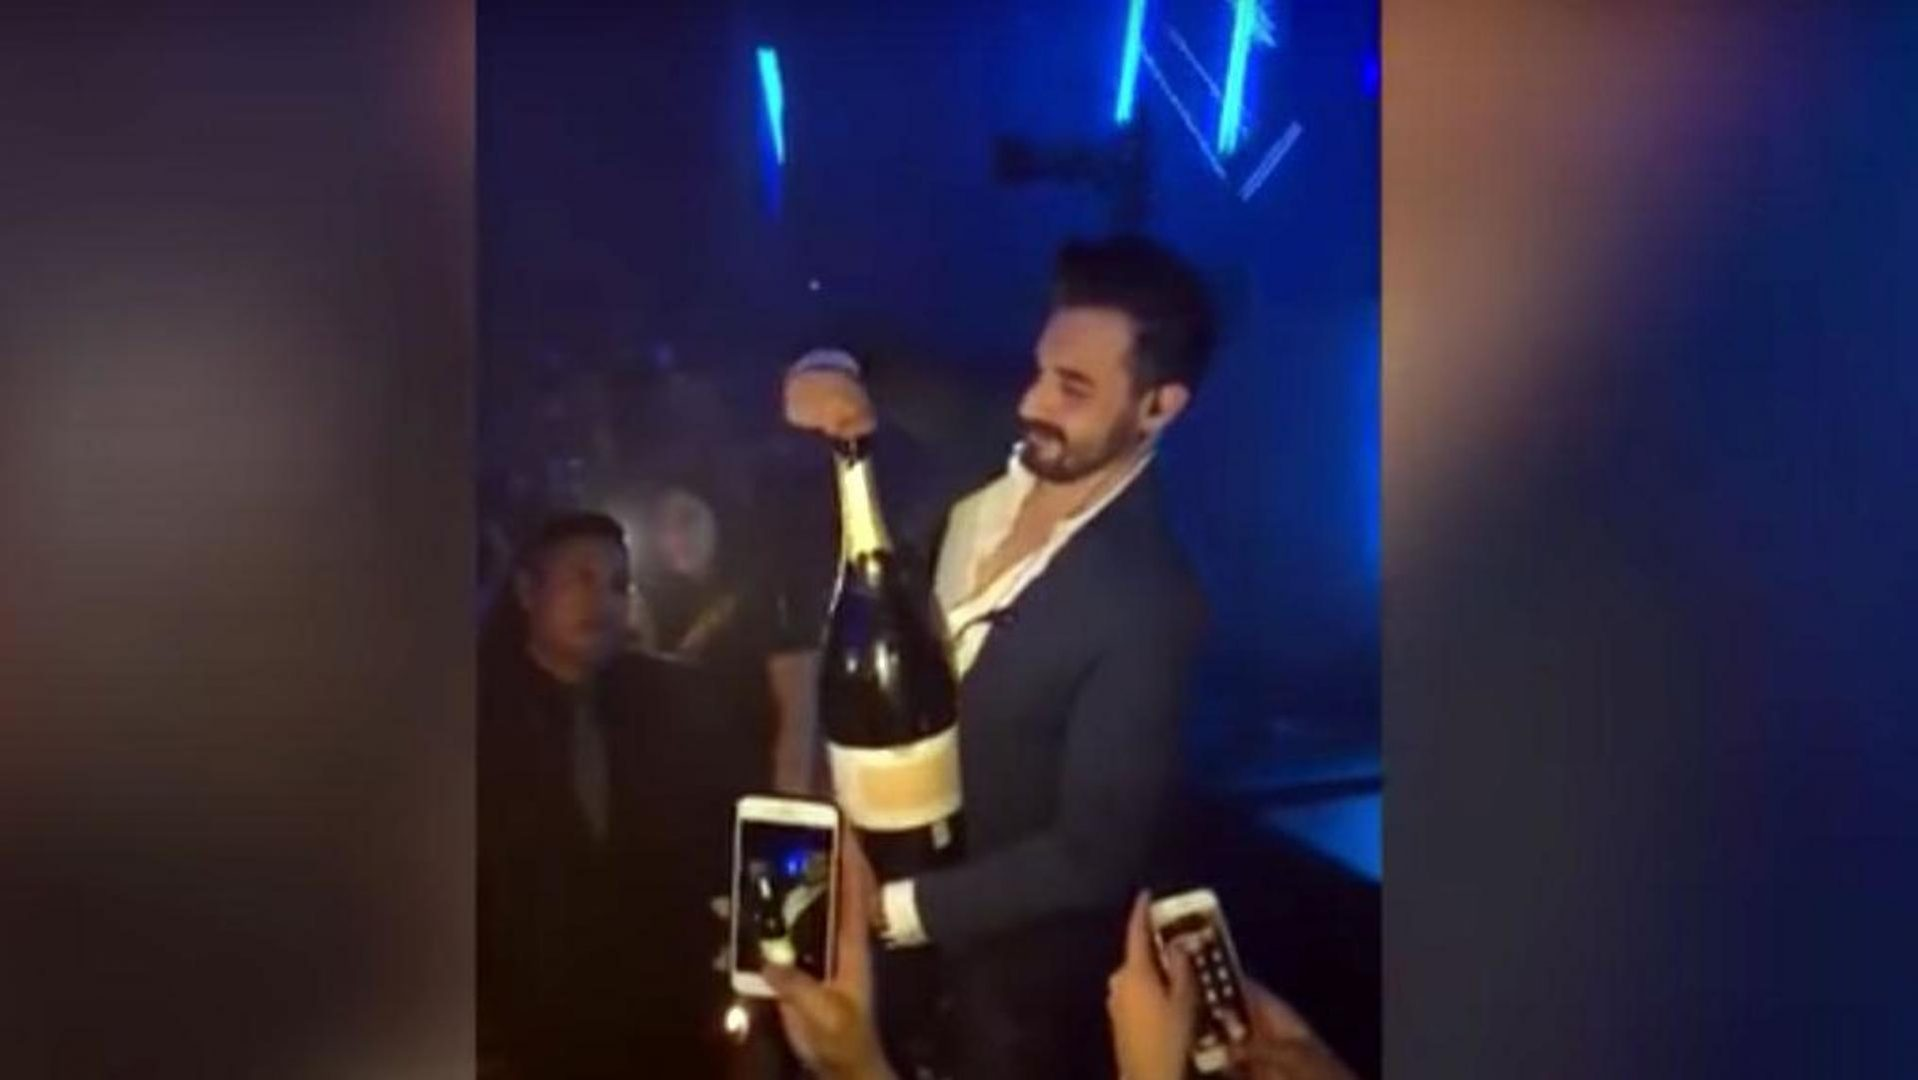 Nightclub champagne douchebag.